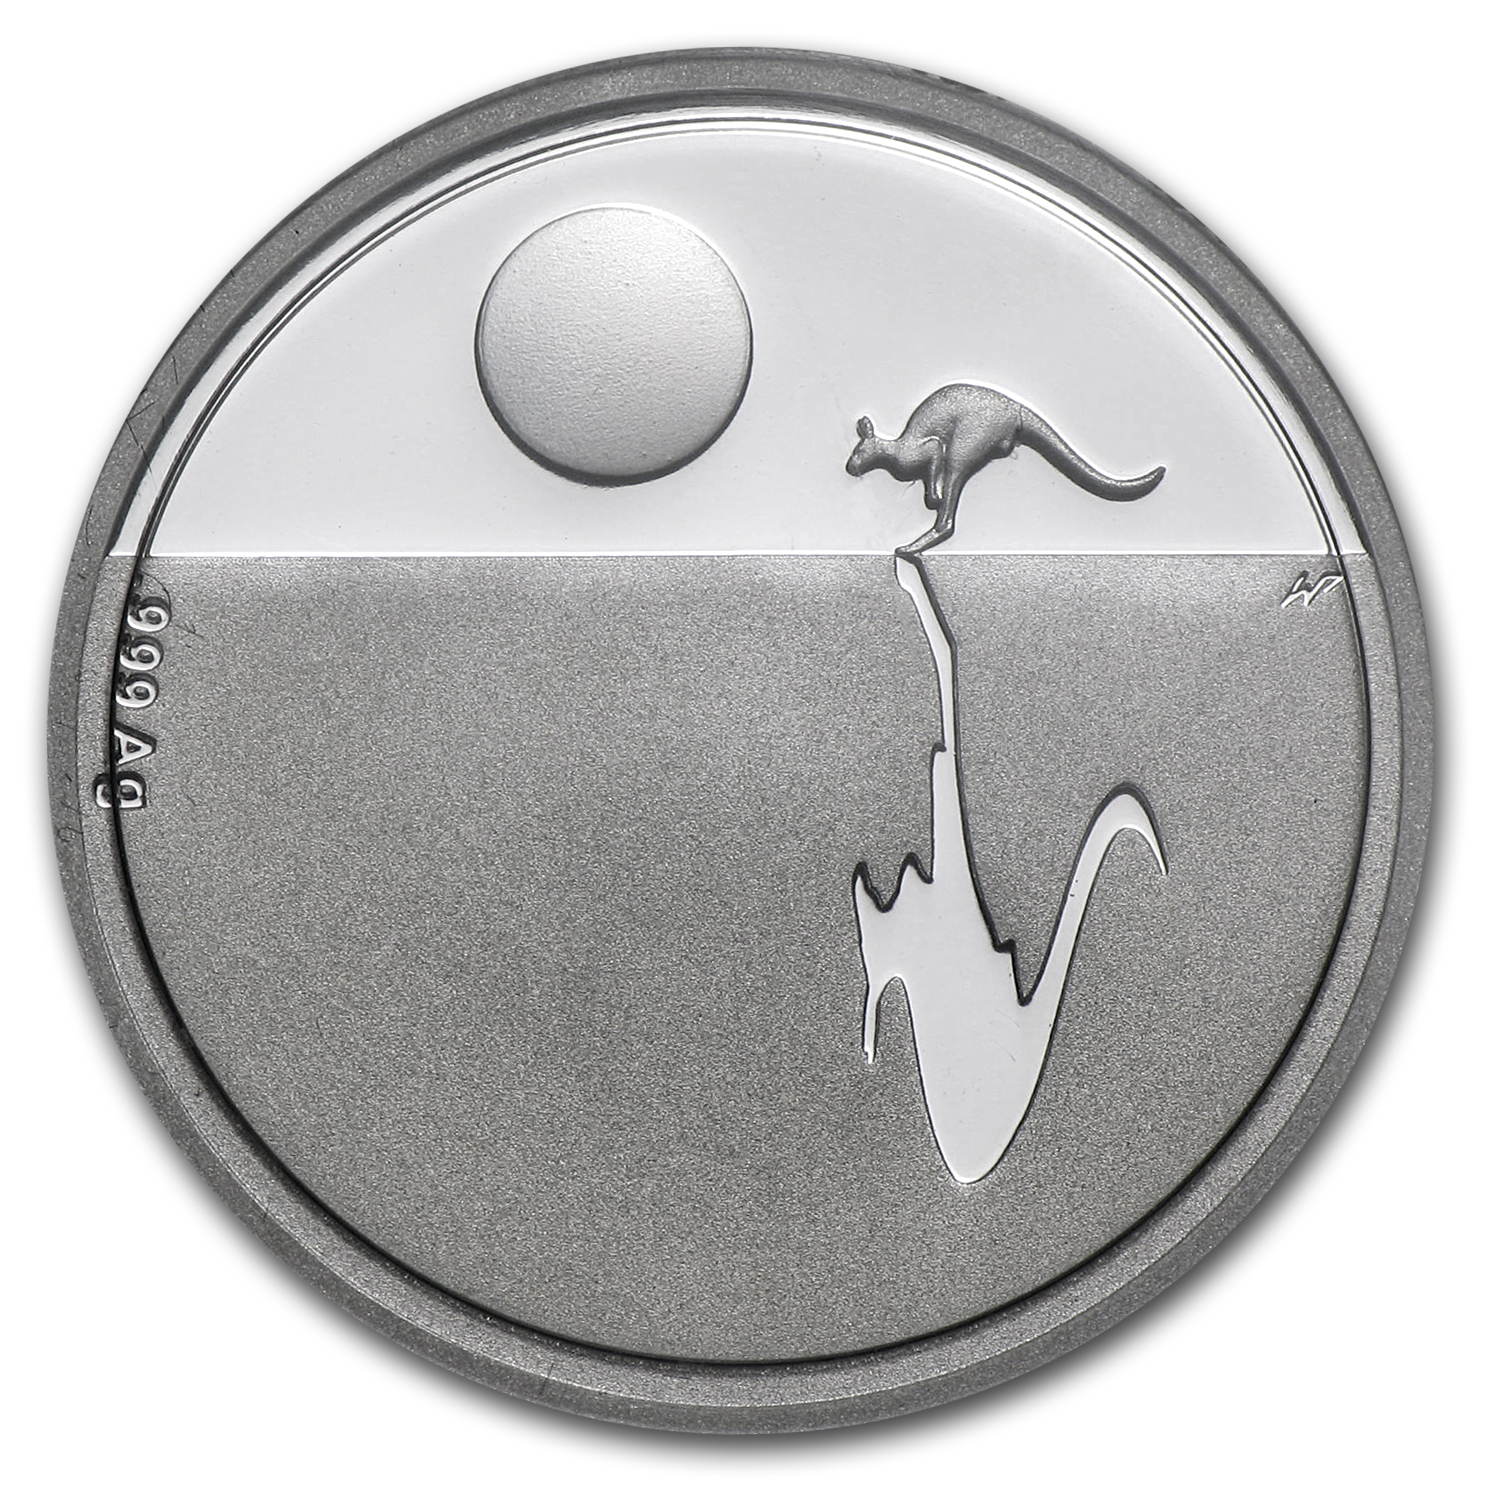 2011 Australia Silver $1 Kangaroo at Sunset